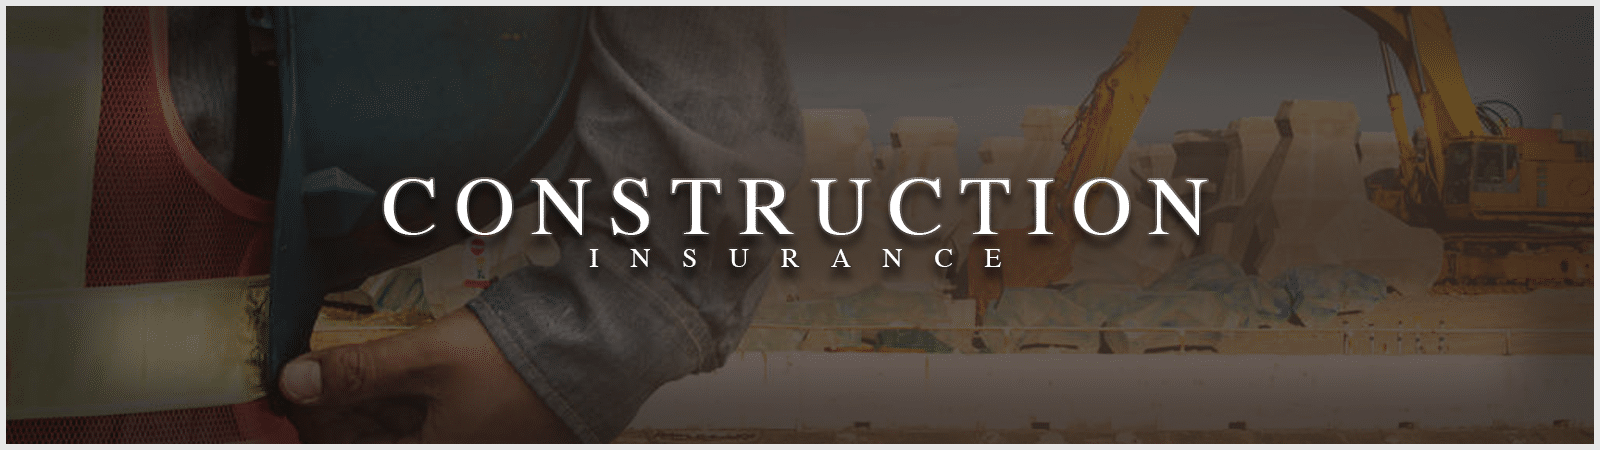 What You Need To Know About Construction Insurance Image